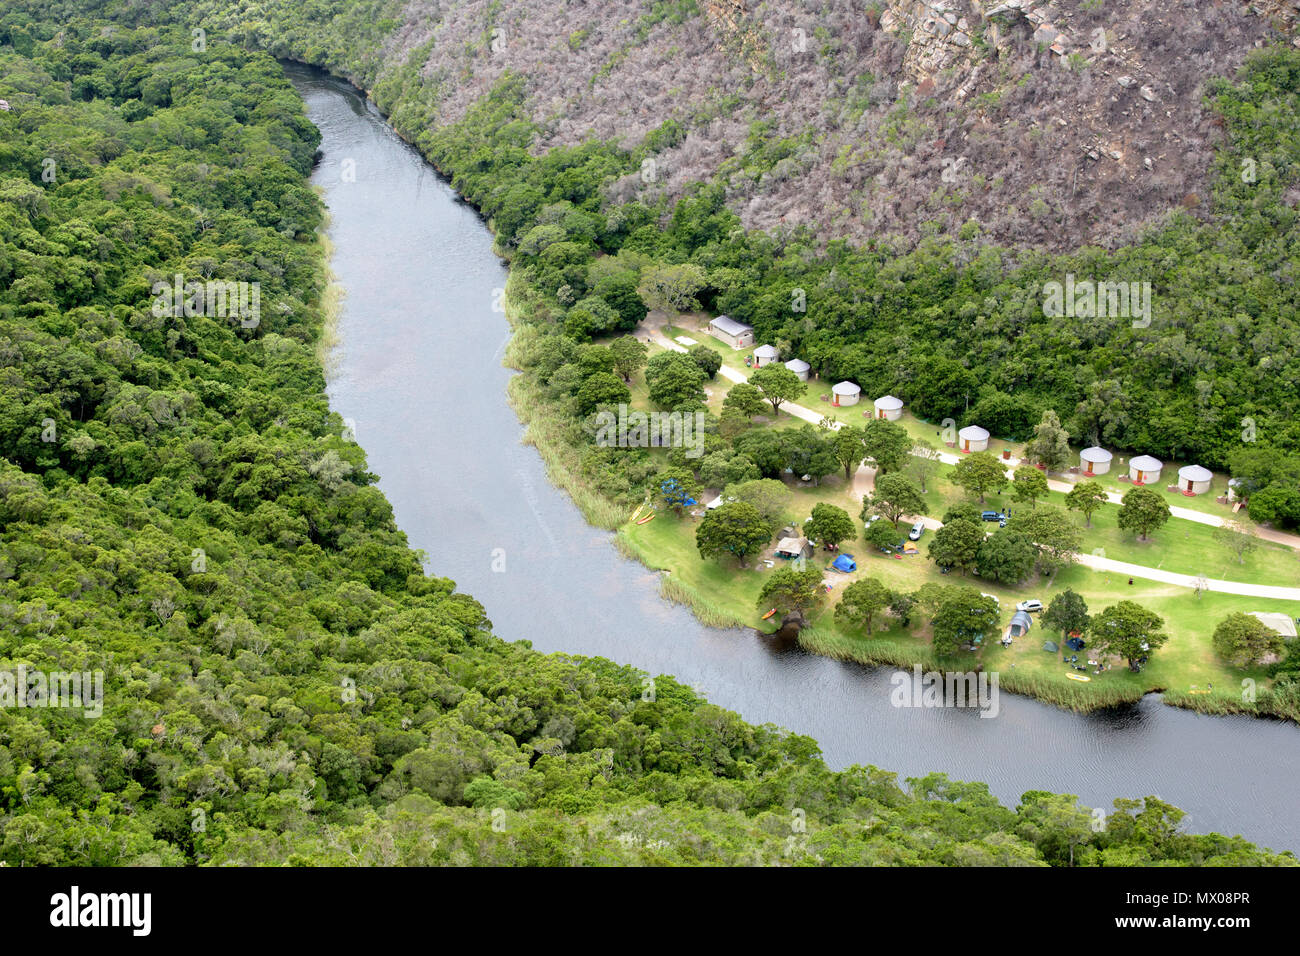 Aerial view of the Ebb & Flow camp in the Wilderness area of the Garden Route in South Africa - Stock Image